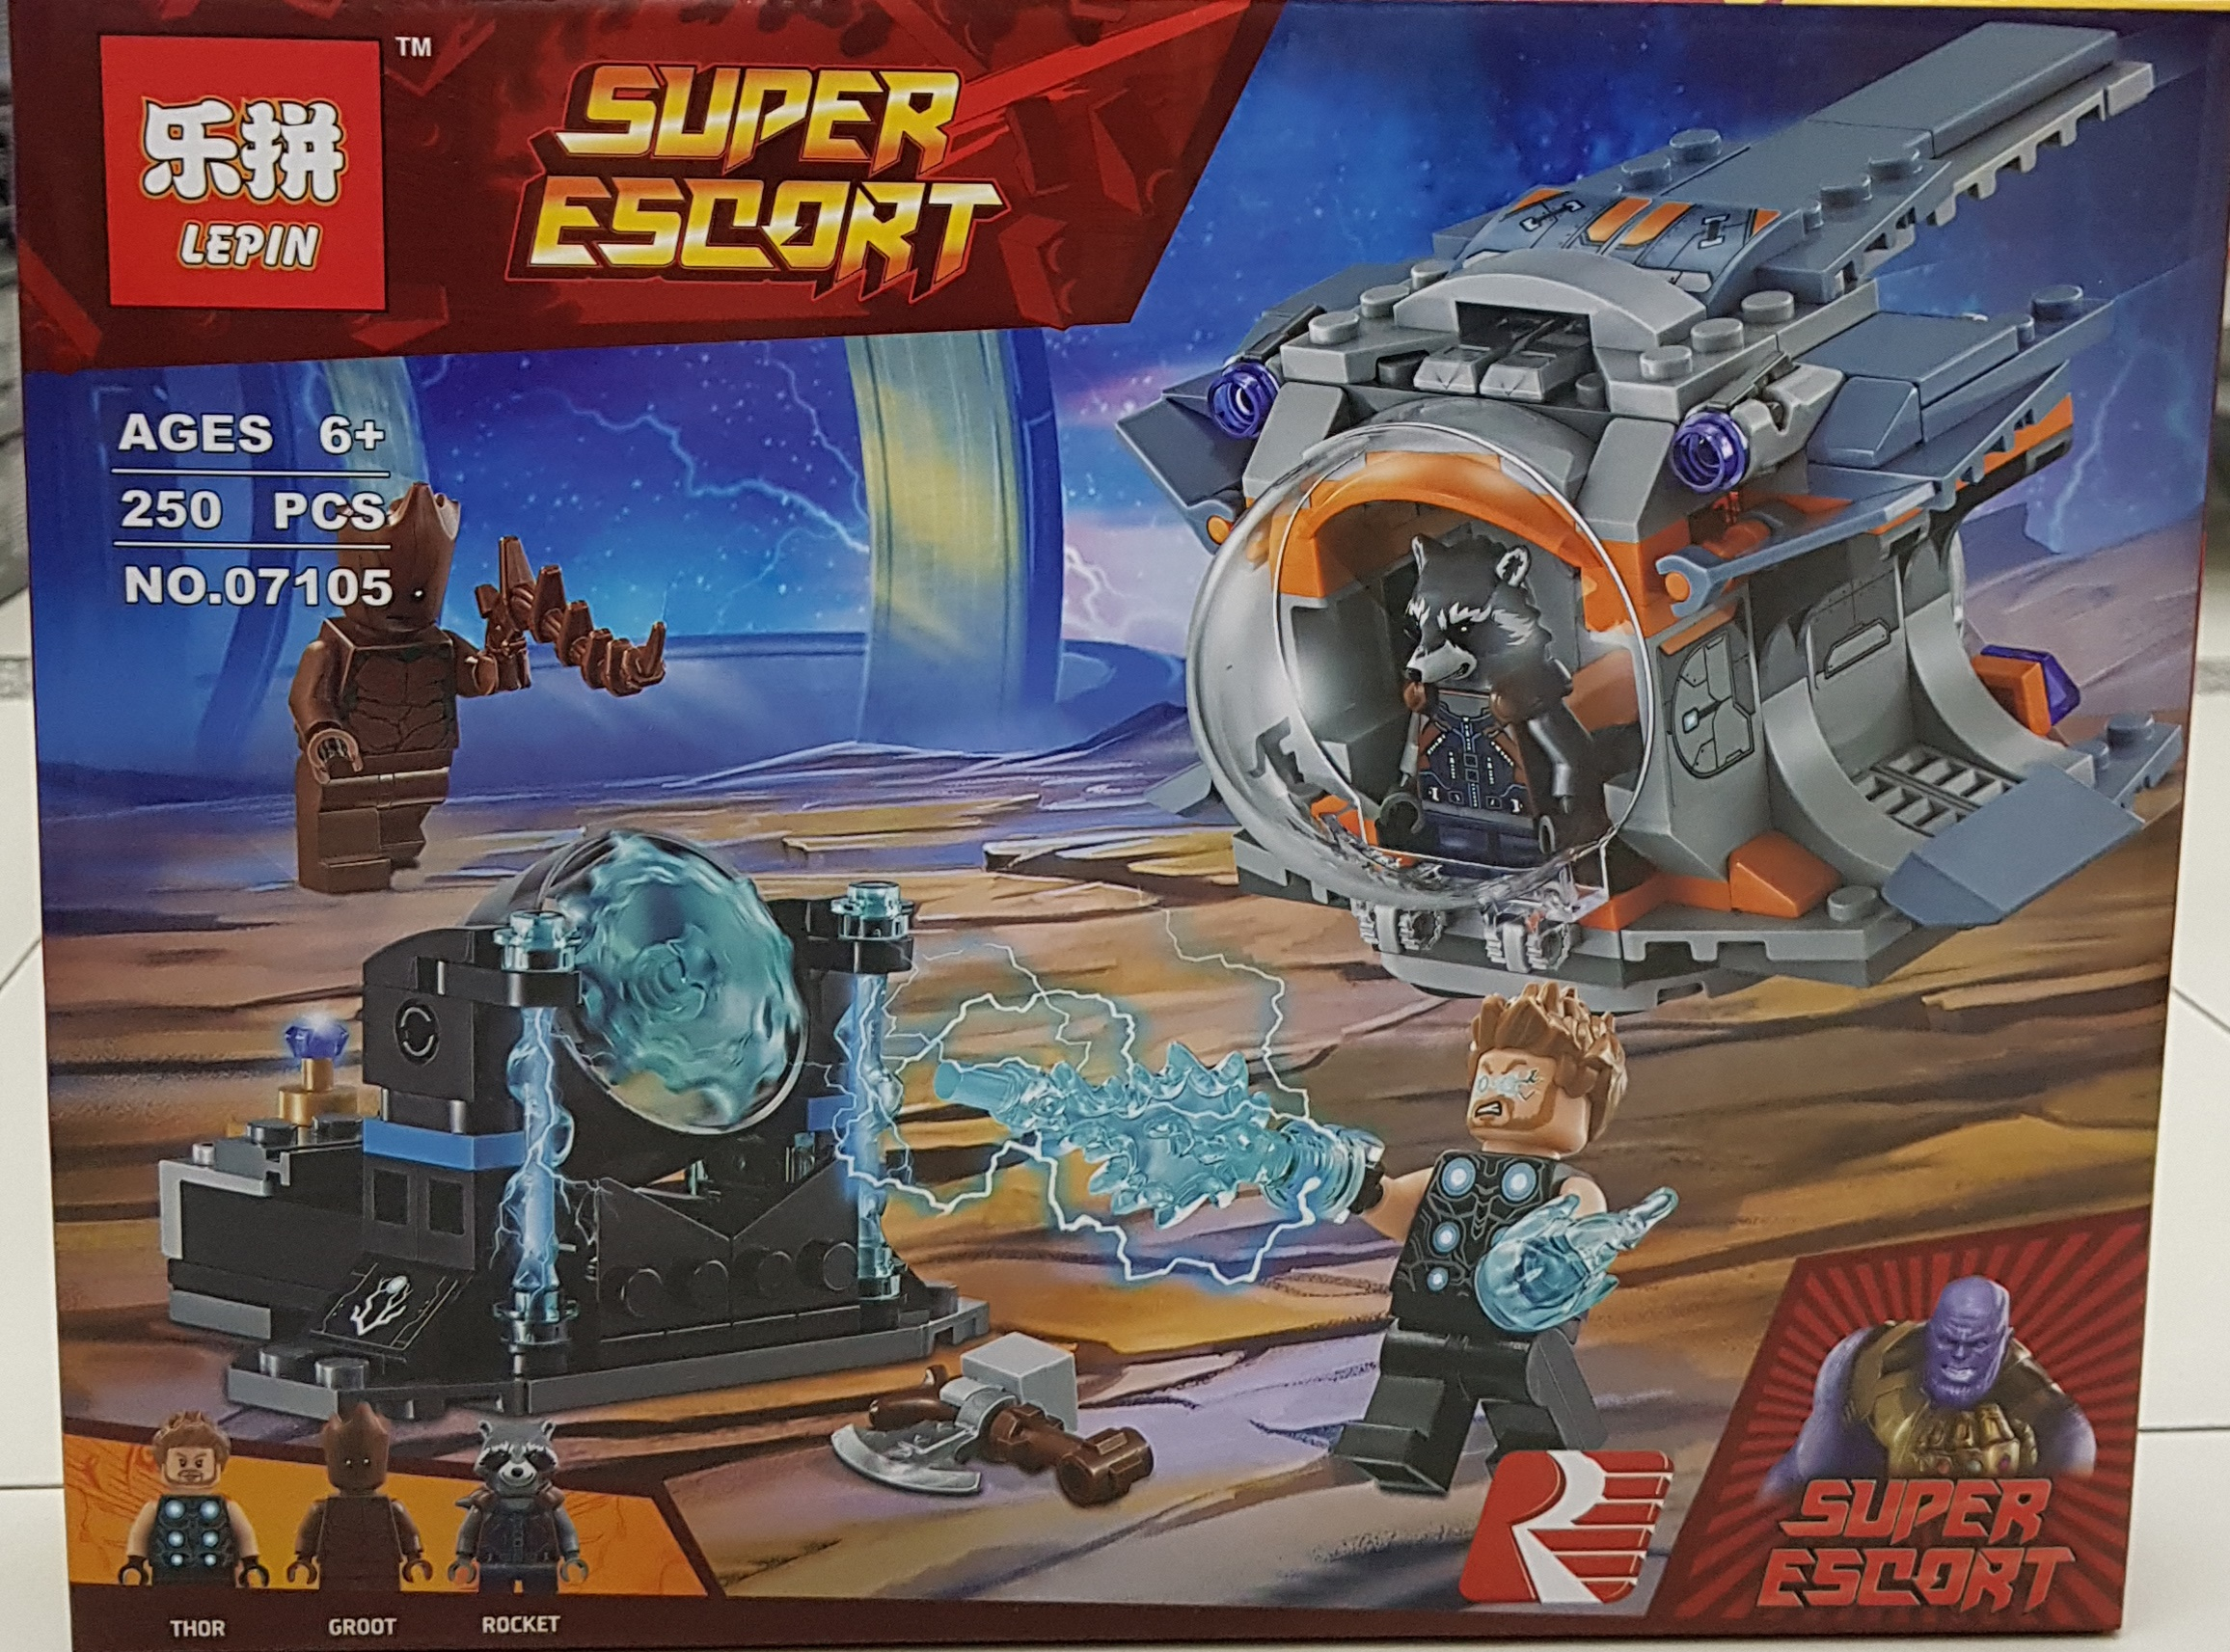 LEPIN SUPER ESCORT 07105 [250ชิ้น]